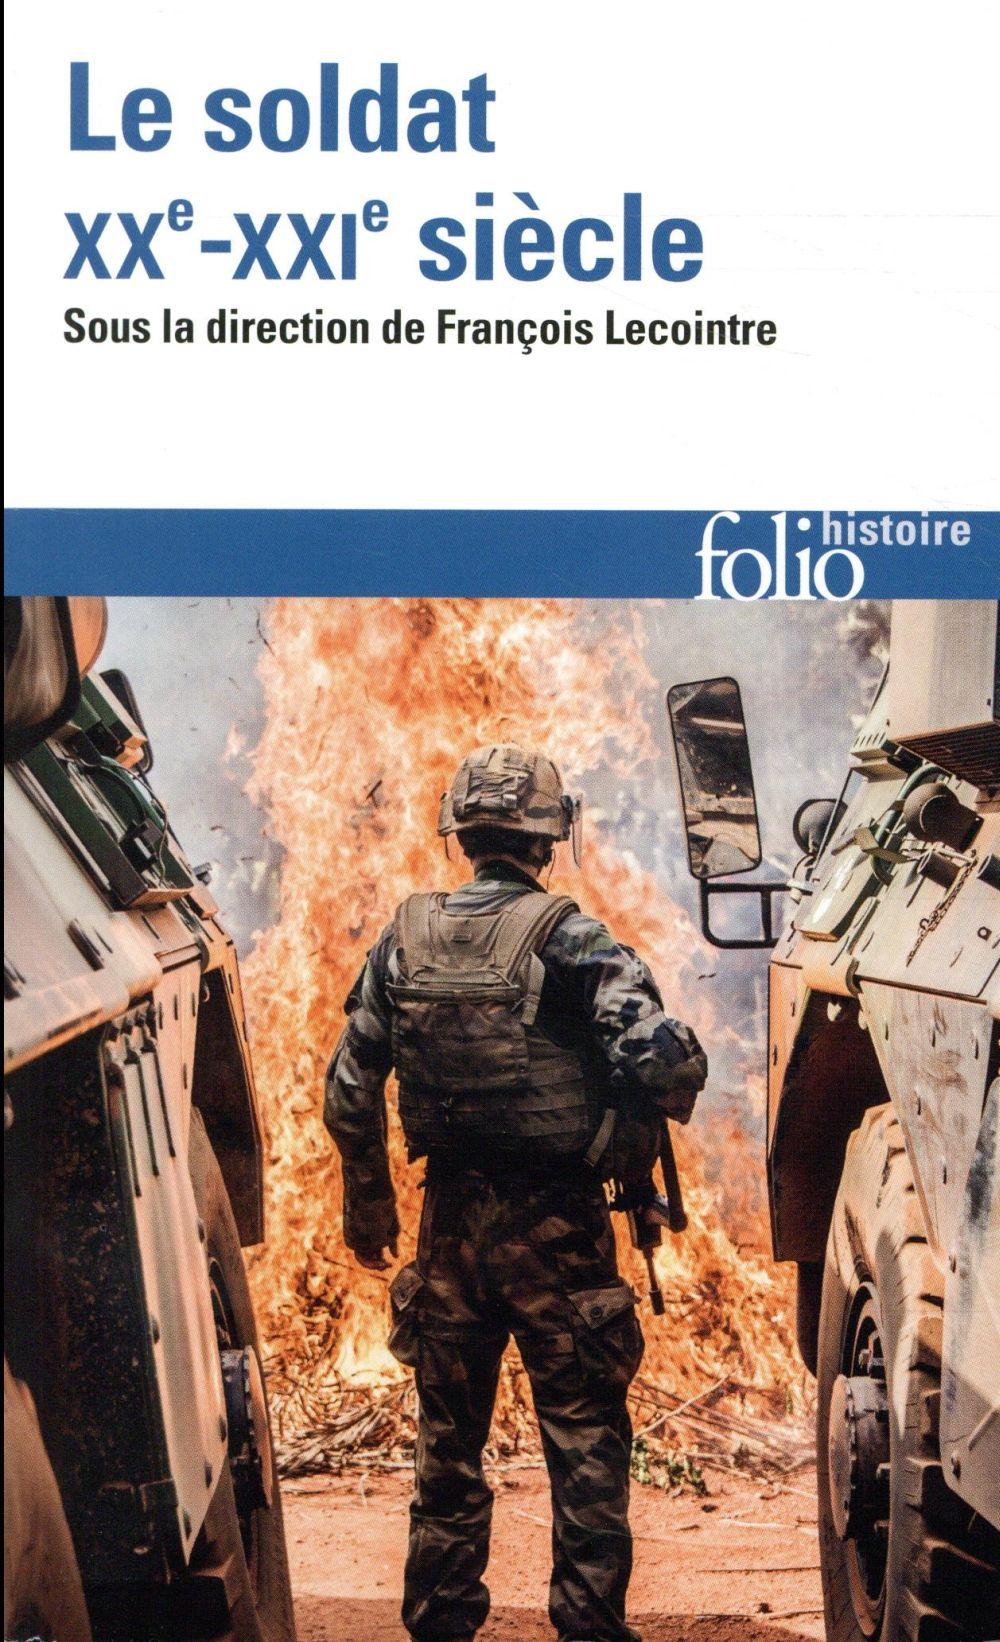 LE SOLDAT - XXE-XXIE SIECLE COLLECTIFS GALLIMARD GALLIMARD